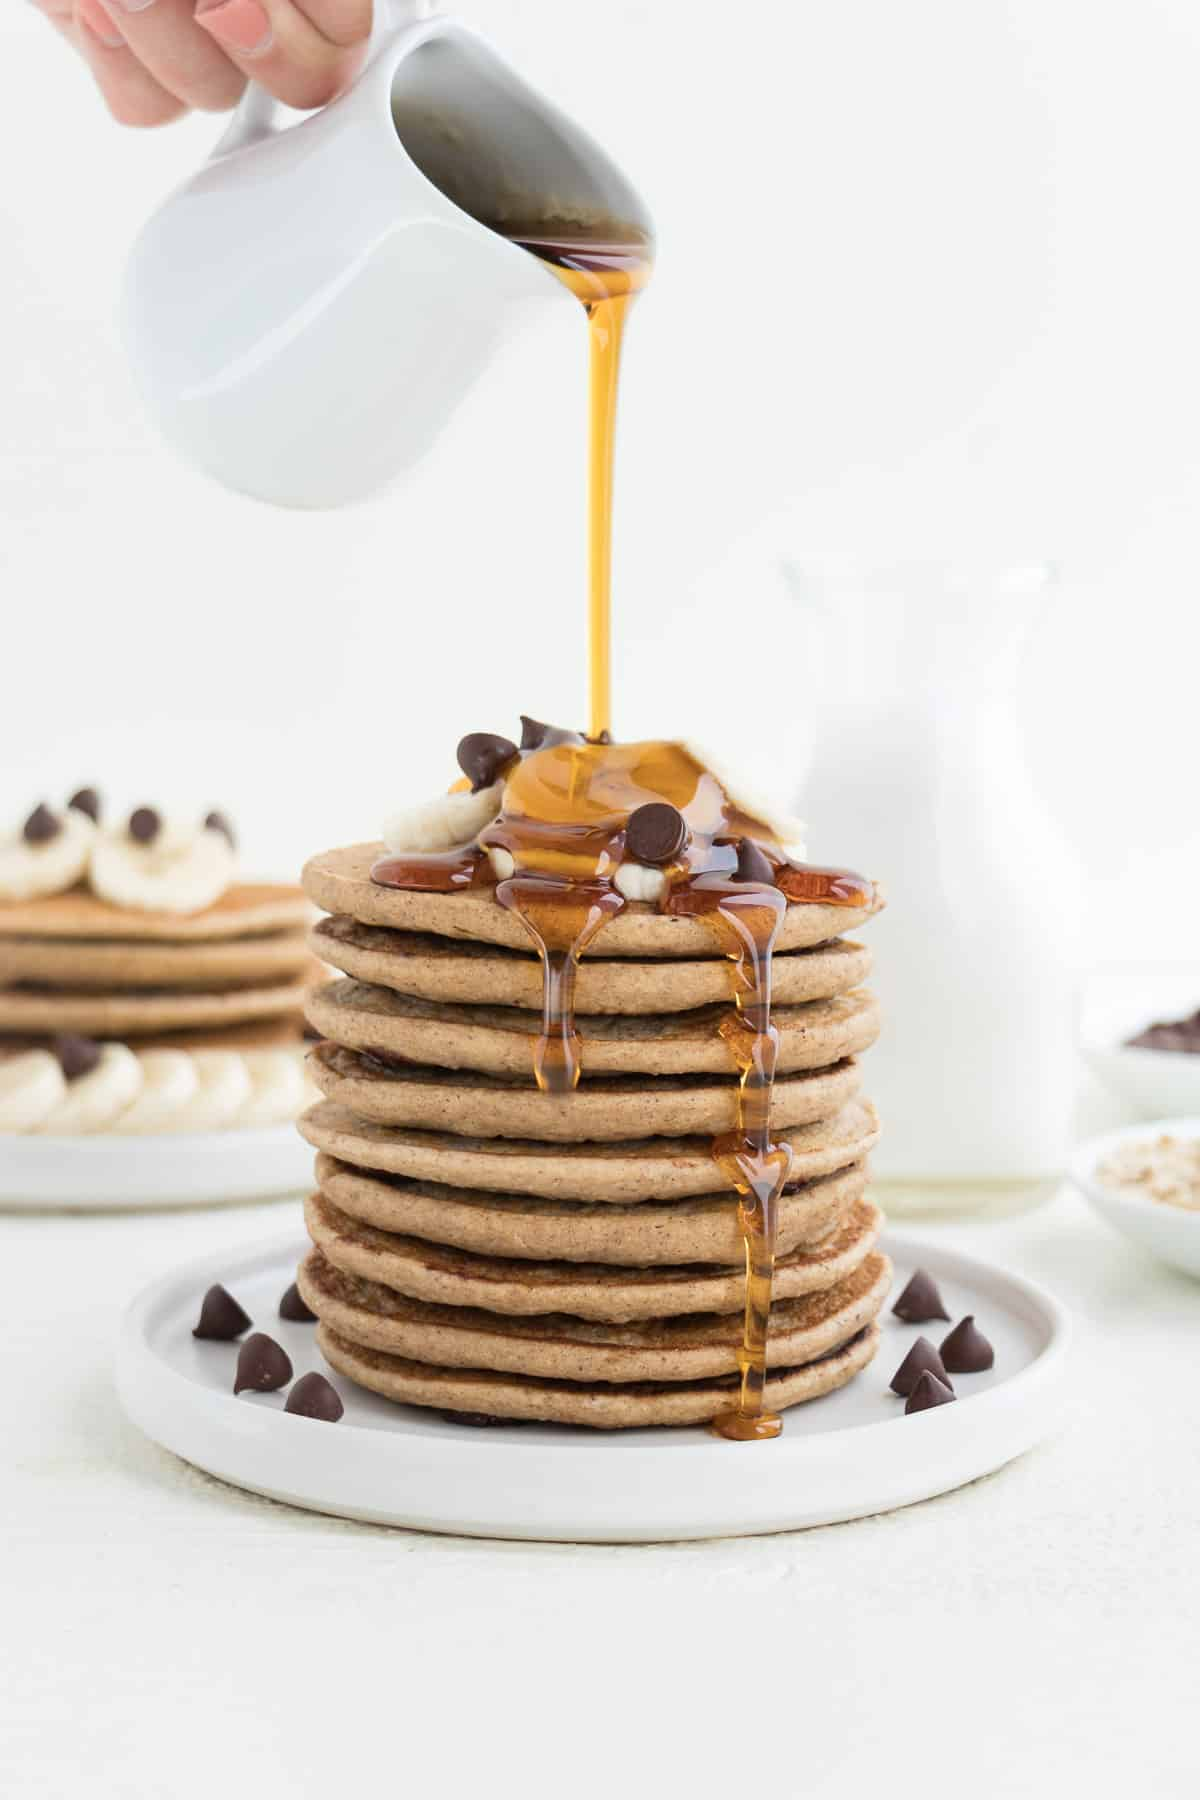 pouring maple syrup over a stack of vegan chocolate chip banana pancakes